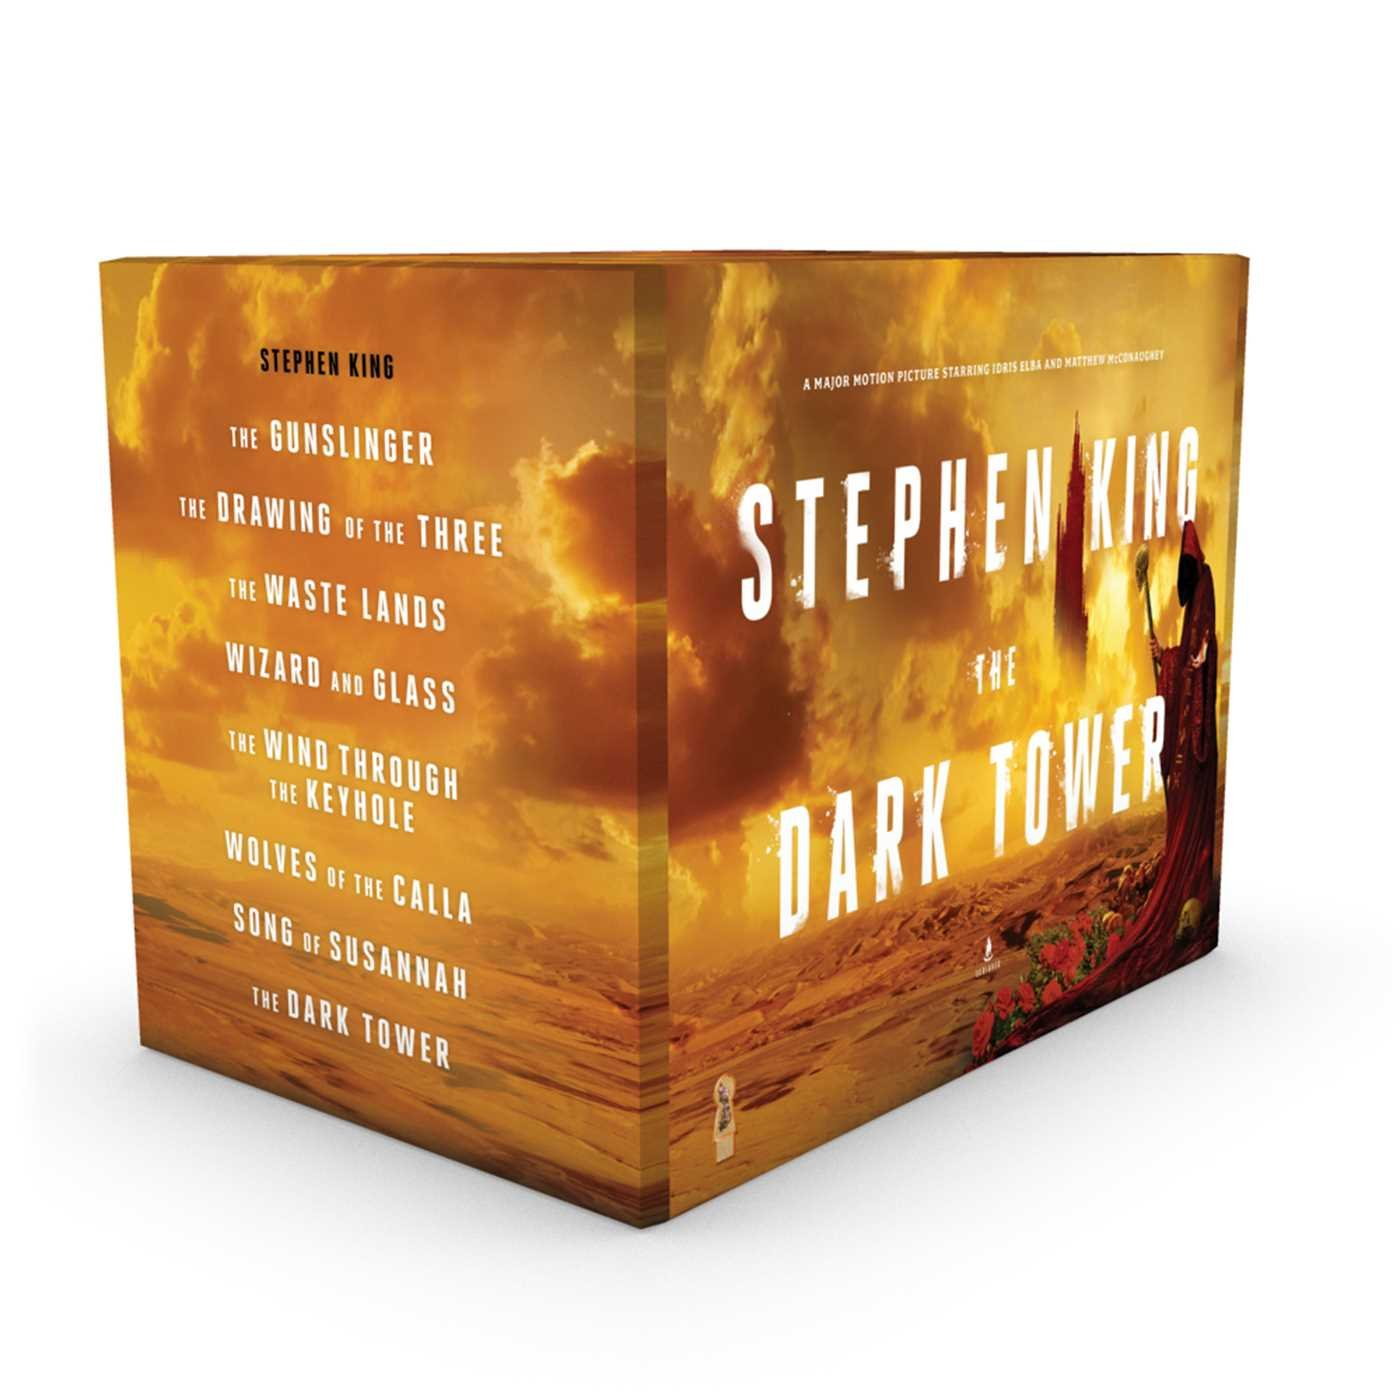 The dark tower 8 book boxed set stephen king 9781501163562 books the dark tower 8 book boxed set stephen king 9781501163562 books amazon stopboris Gallery